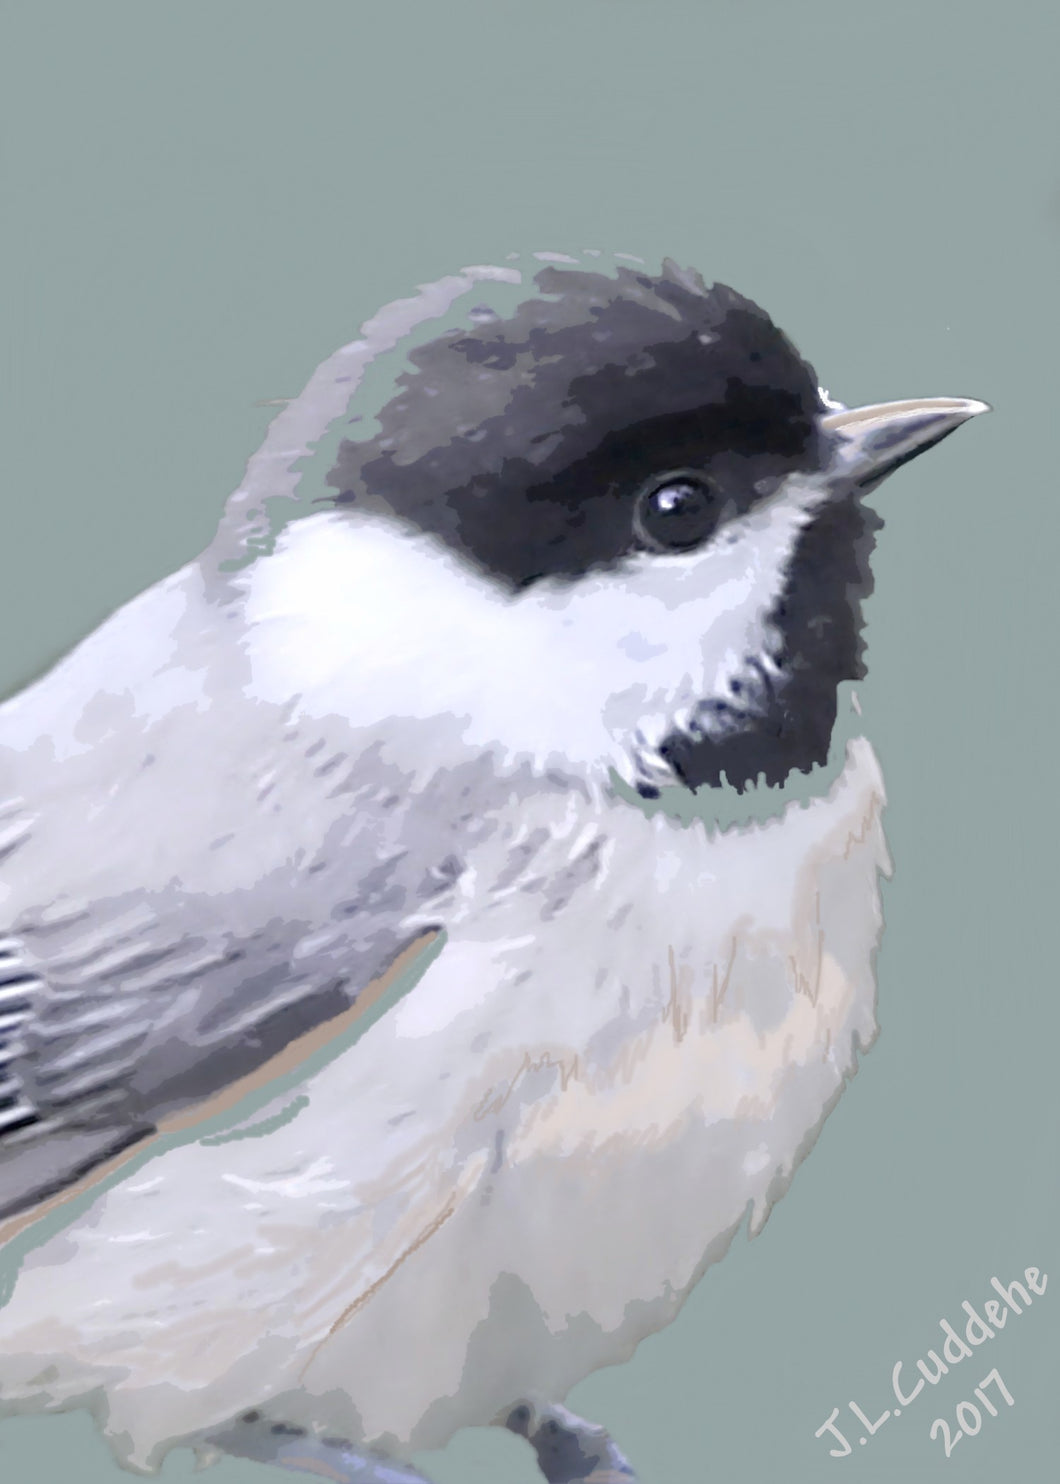 Carolina Chickadee puffed up against the cold, print by Judy Link Cuddehe for Found Link Press.